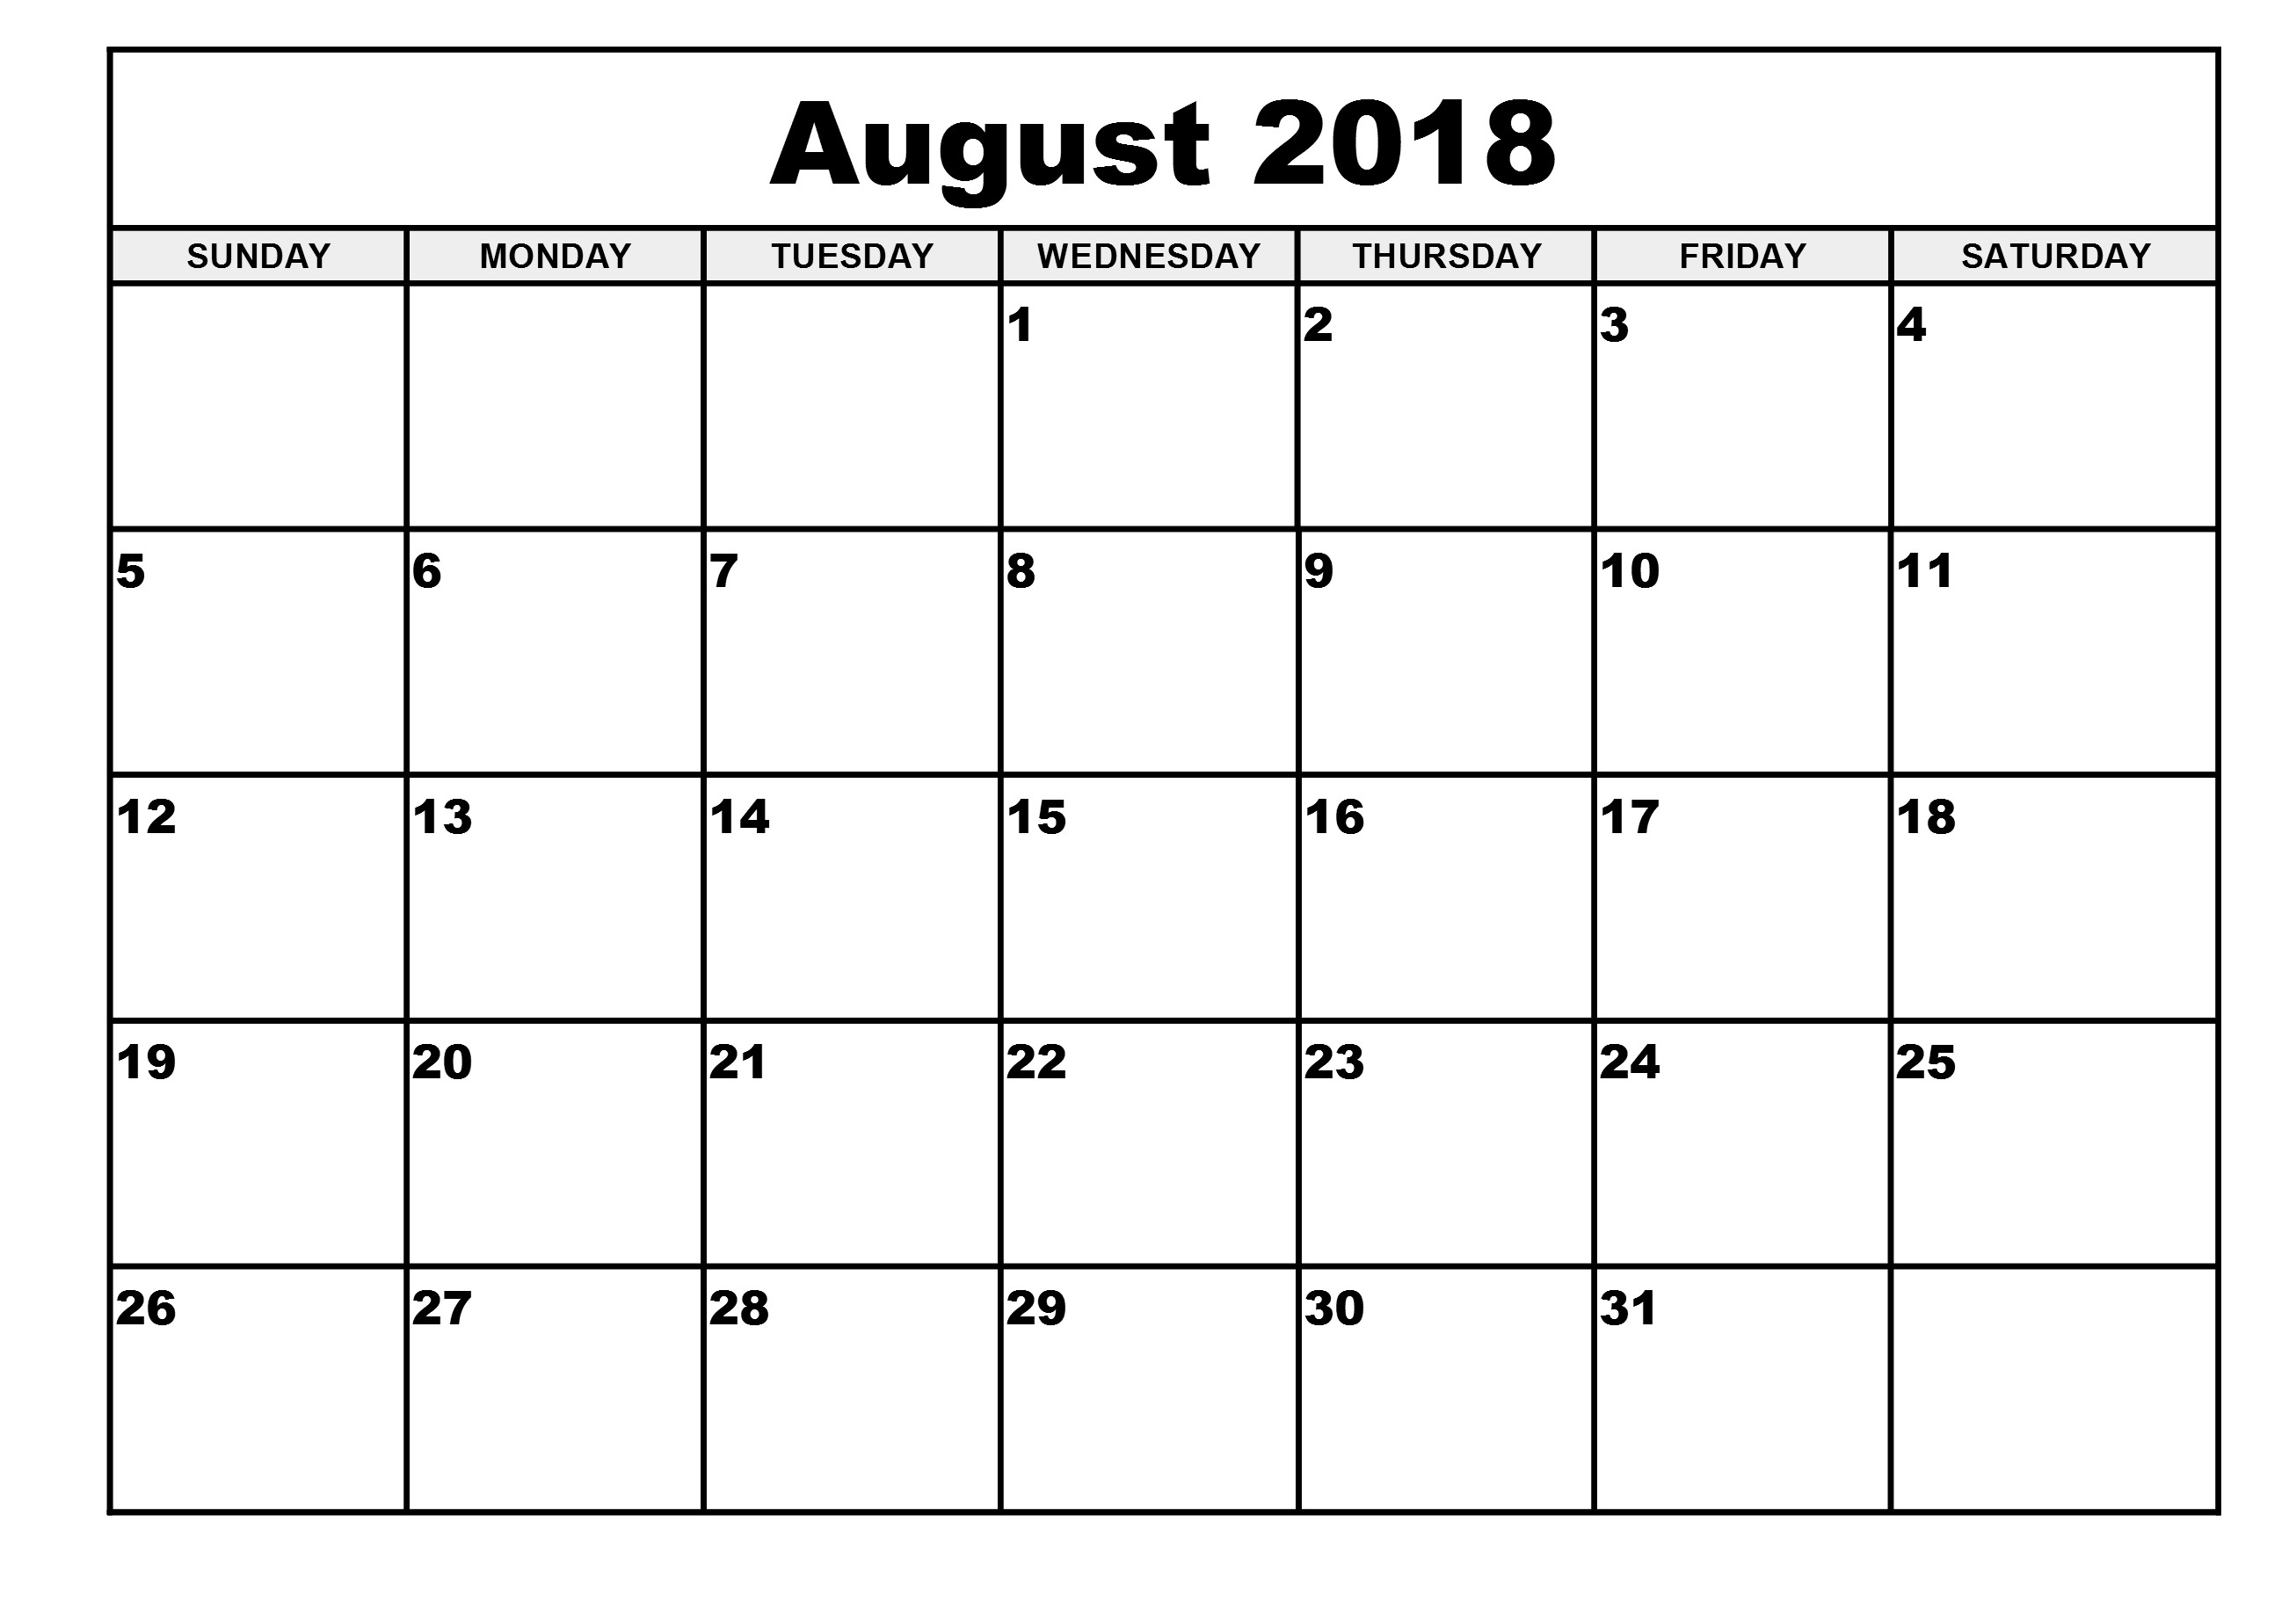 Calendar August 2018 - Free Printable Calendar, Blank Template, High regarding Blank Calendar Of August Full Page